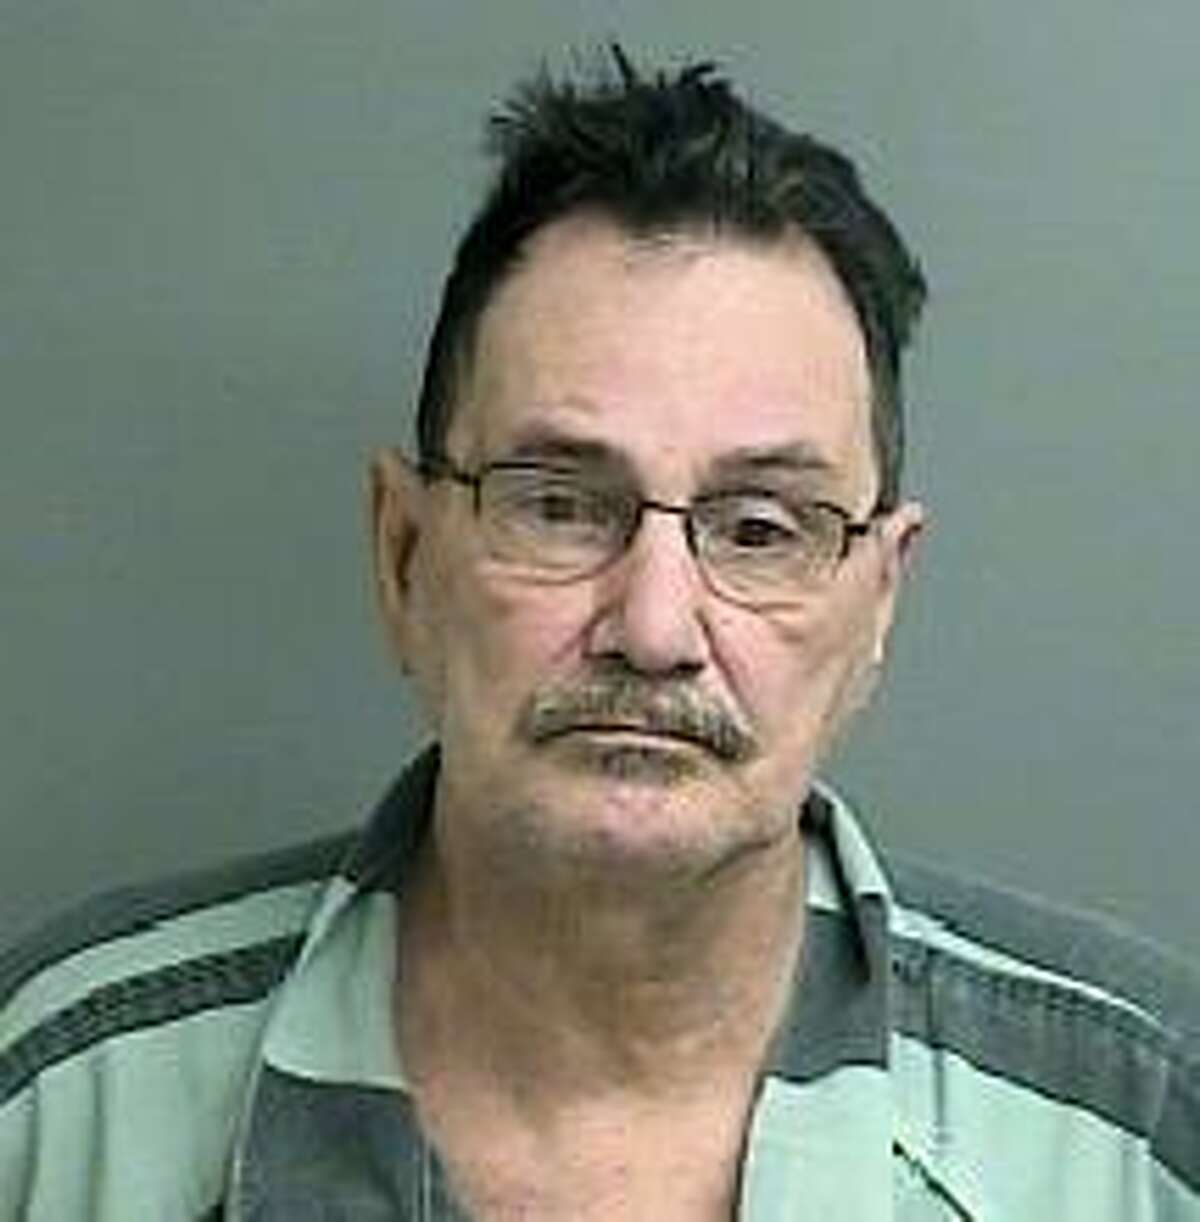 Joe Ford Woods sentenced to life after 12 DWI convictions. The Montgomery County man was arrested by a state trooper in February 2015 after eh crashed into a vehicle at a stop sign near an elementary school, according to previous reports.